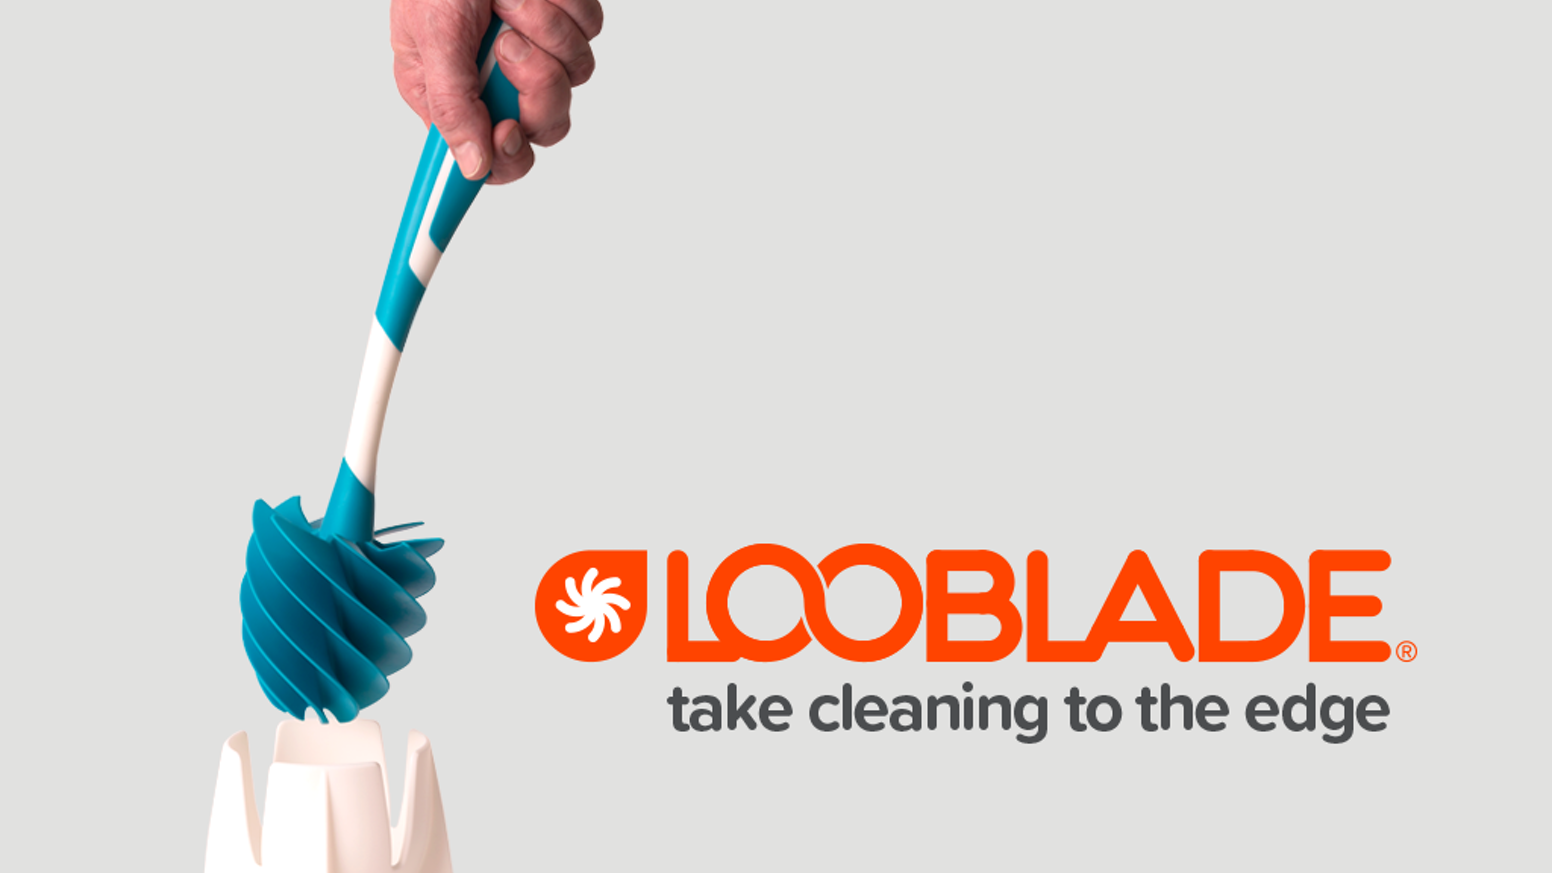 Drip-free. Clog-free. Germ-free. Swipe your toilets clean with LooBlade's patented, hygienic, quick-drying, anti-microbial design. In Stock Now